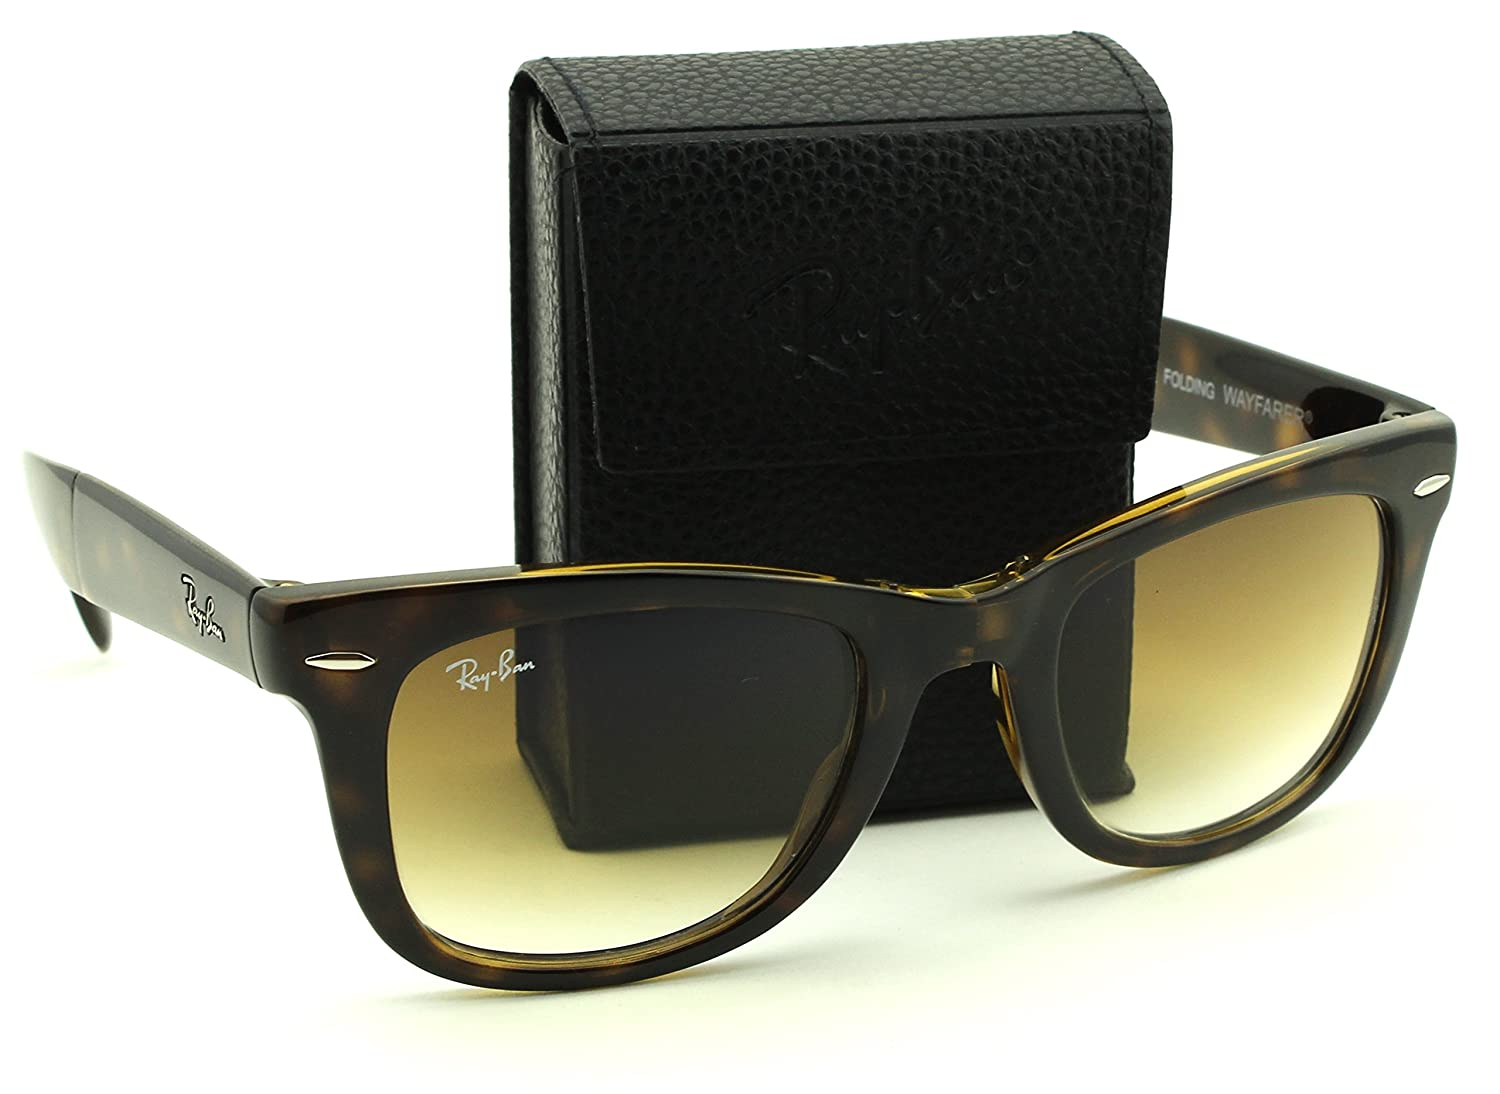 f5a69a00cb Amazon.com  Ray-Ban RB4105 710 51 Folding Wayfarer Tortoise Frame   Brown  Gradient Lens 54mm  Shoes